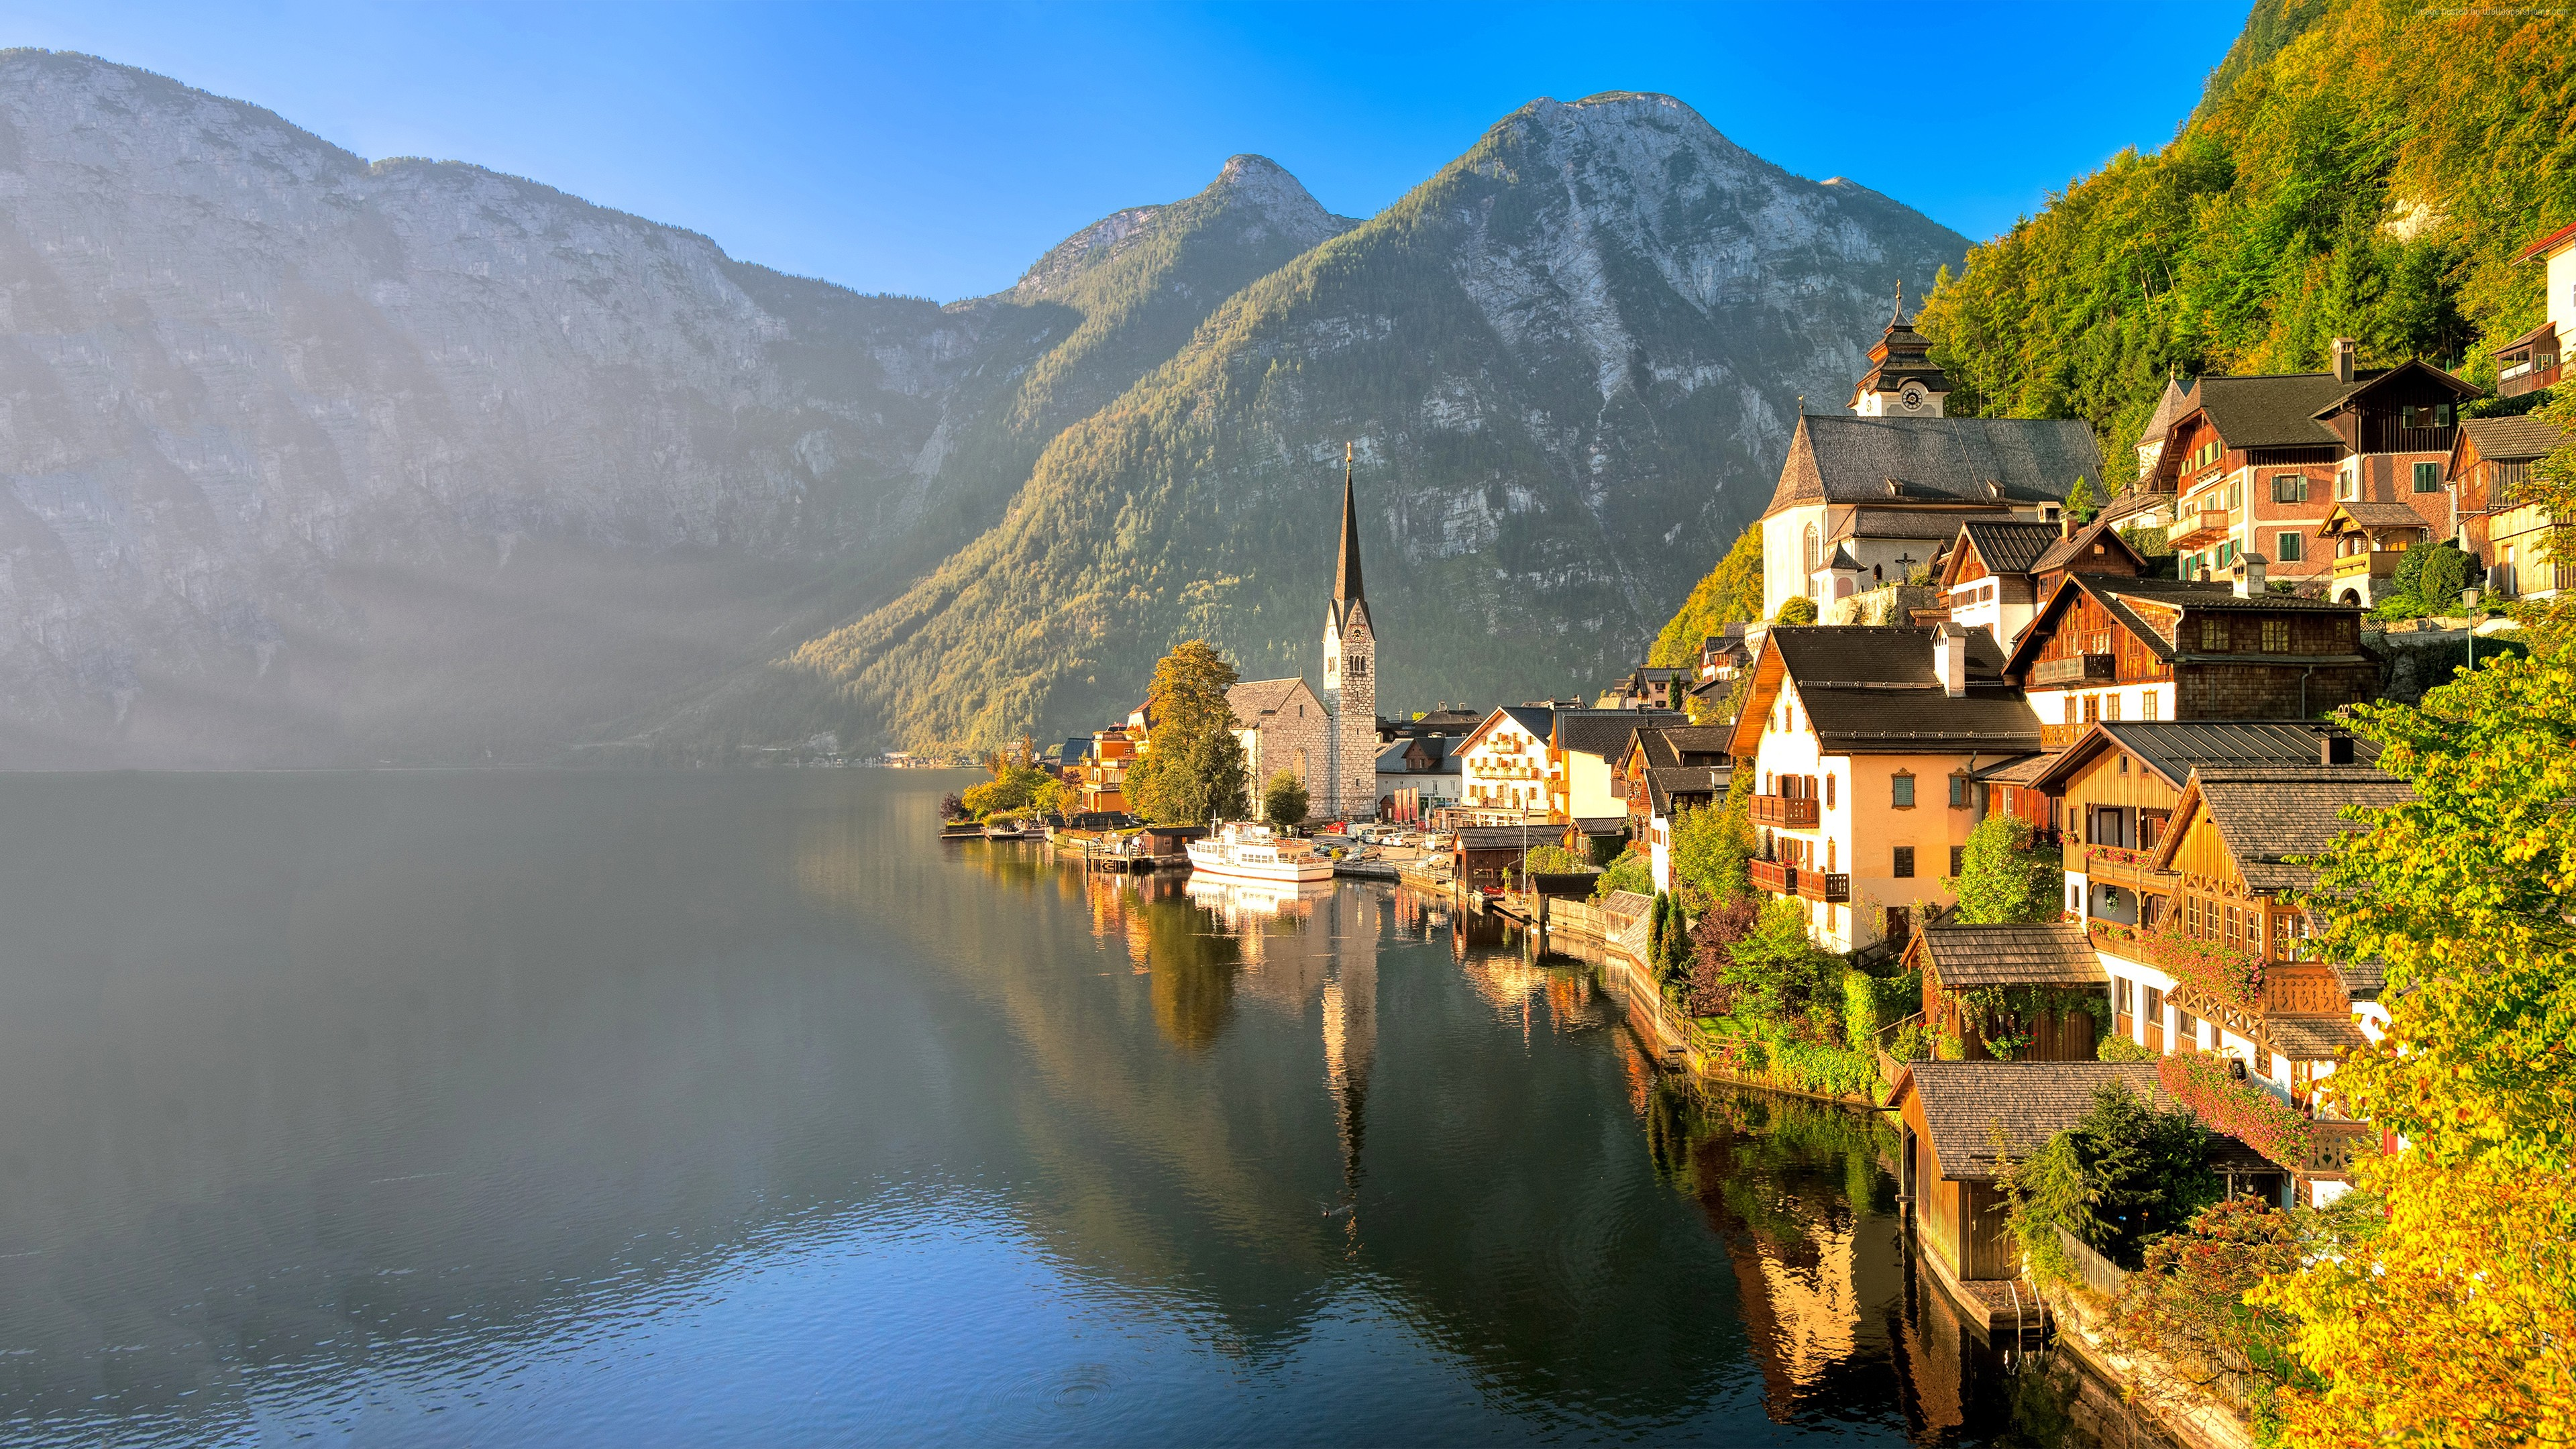 Haus am see wallpaper  Hallstatt, Austria 4k Ultra HD Wallpaper and Hintergrund ...